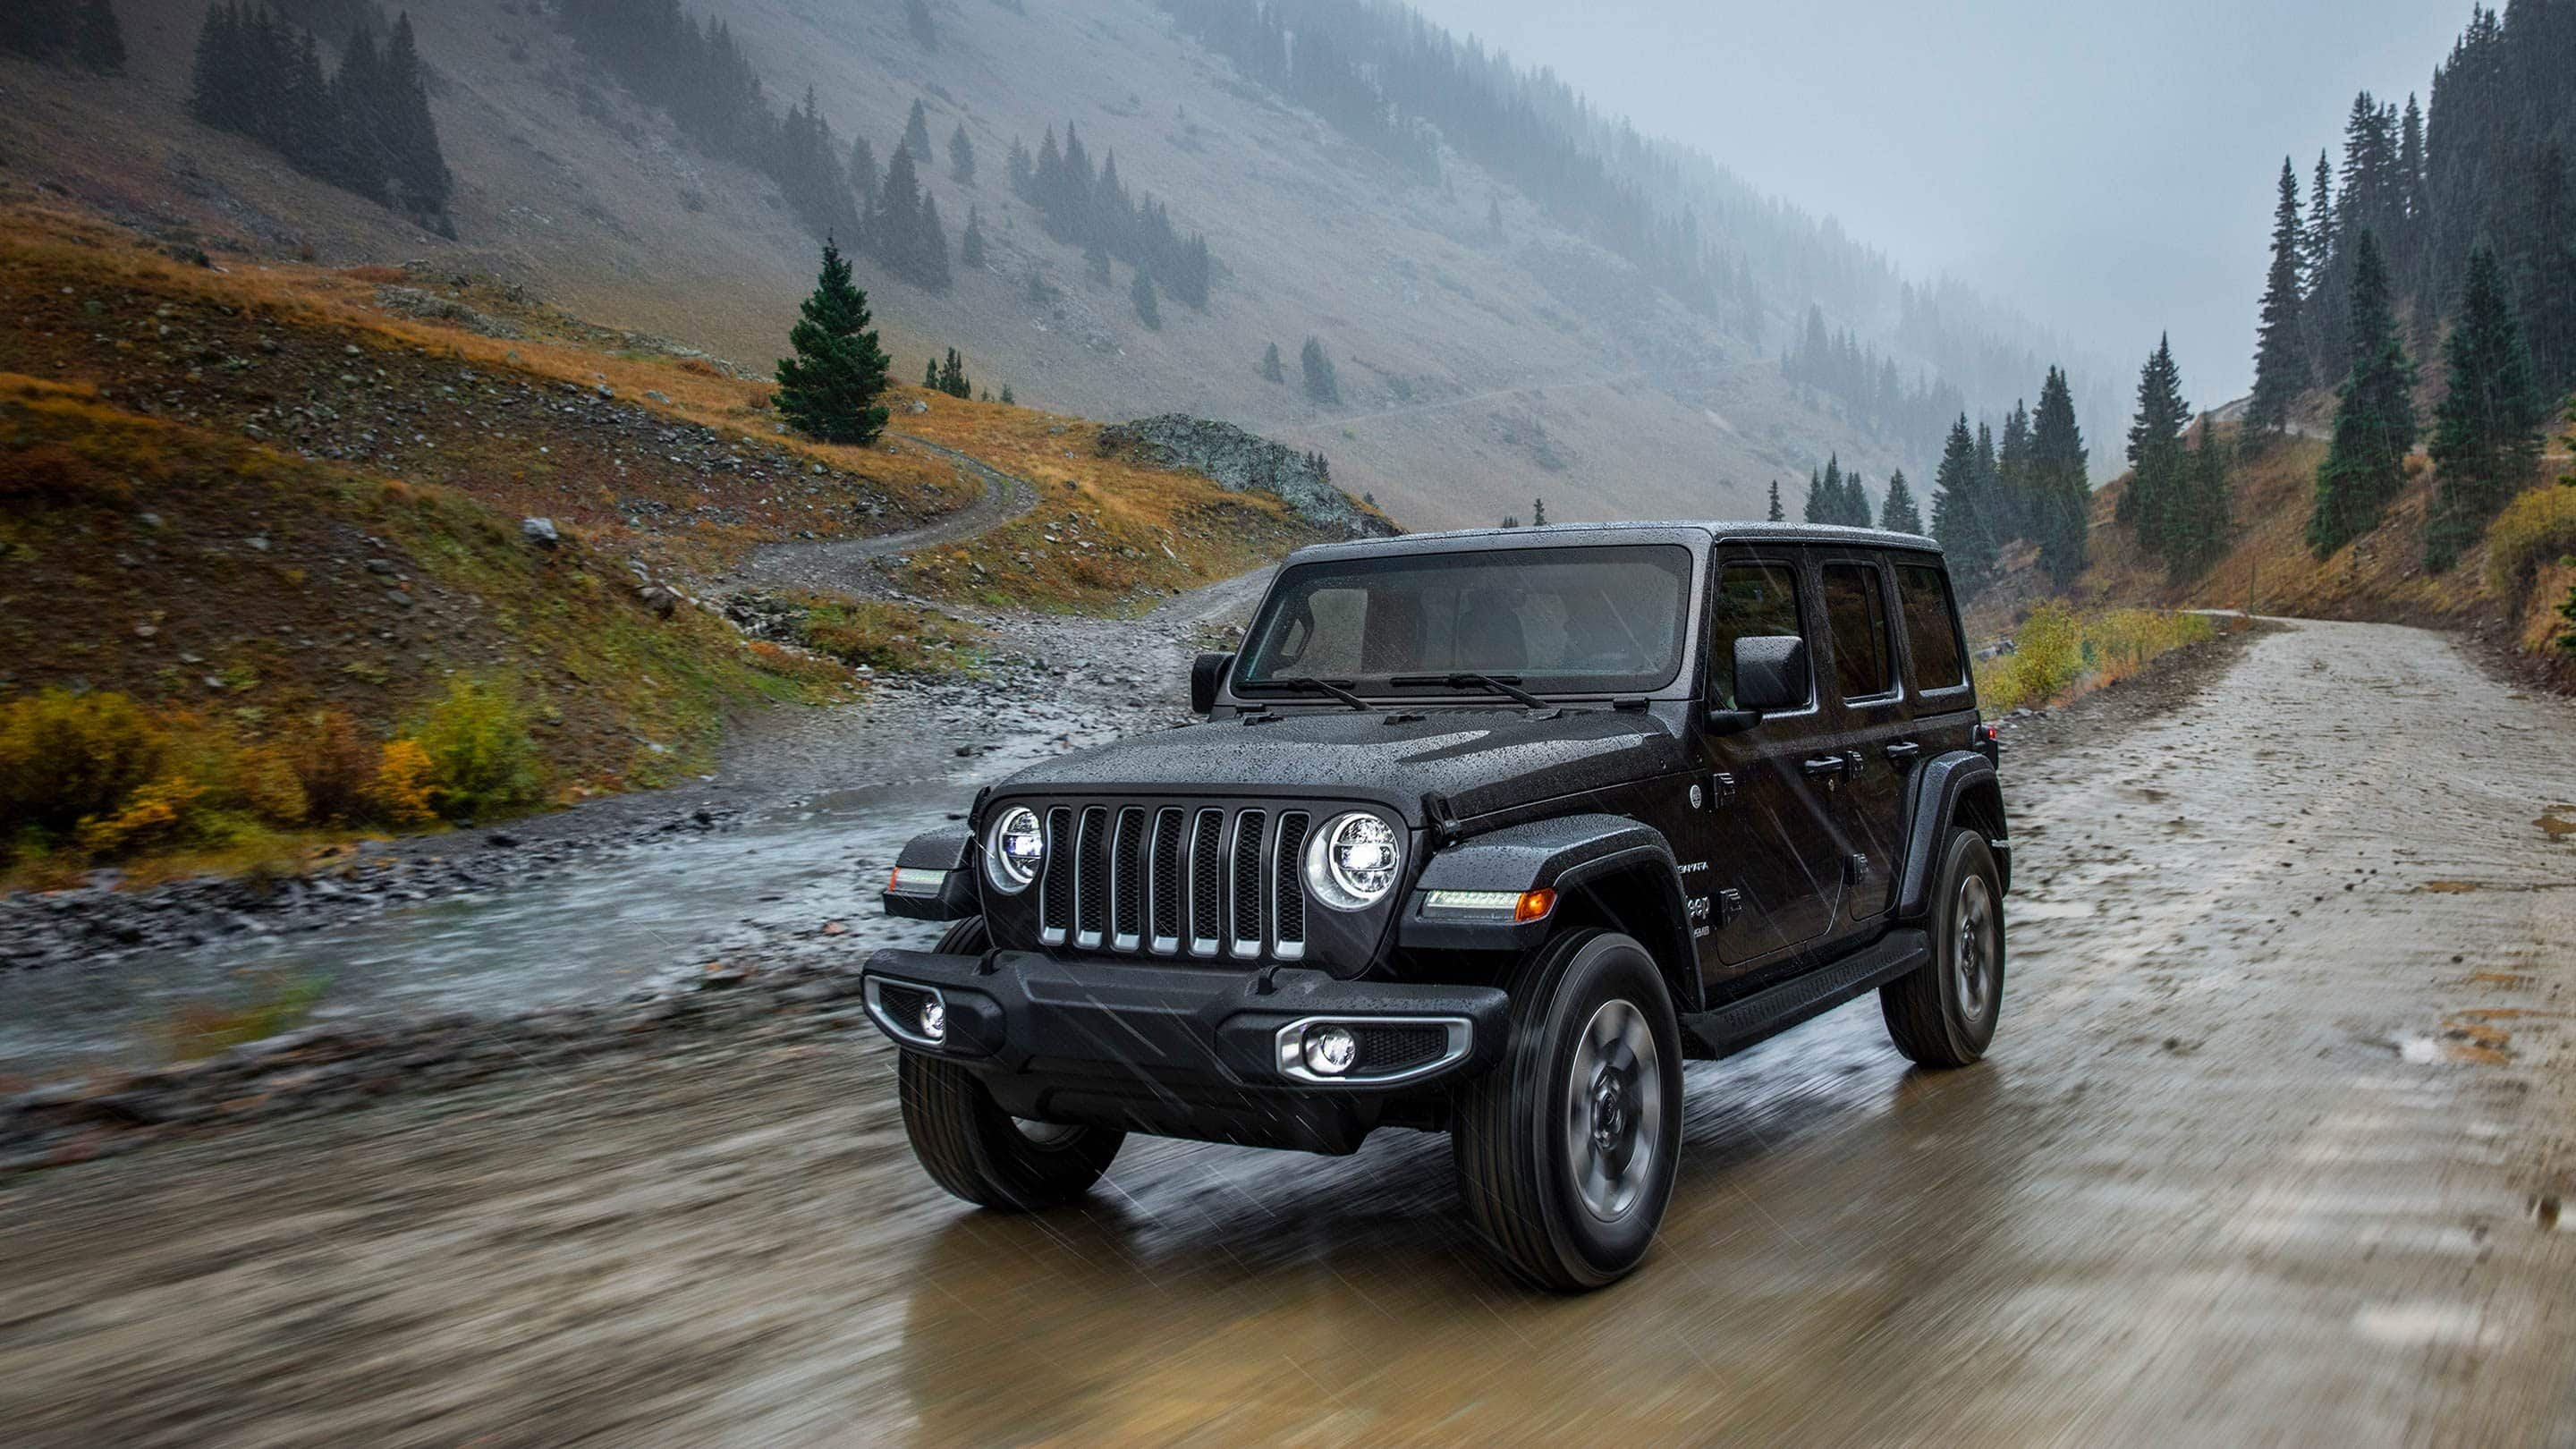 Landmark Dodge Chrysler Jeep Ram Blog 2009 Wrangler Rubicon V6 38 Liter Gas Radiator Components When The Seasoned Experts At Car And Driver Chose To Write About New This Month We Were Naturally Excited Knew That Their Years Of